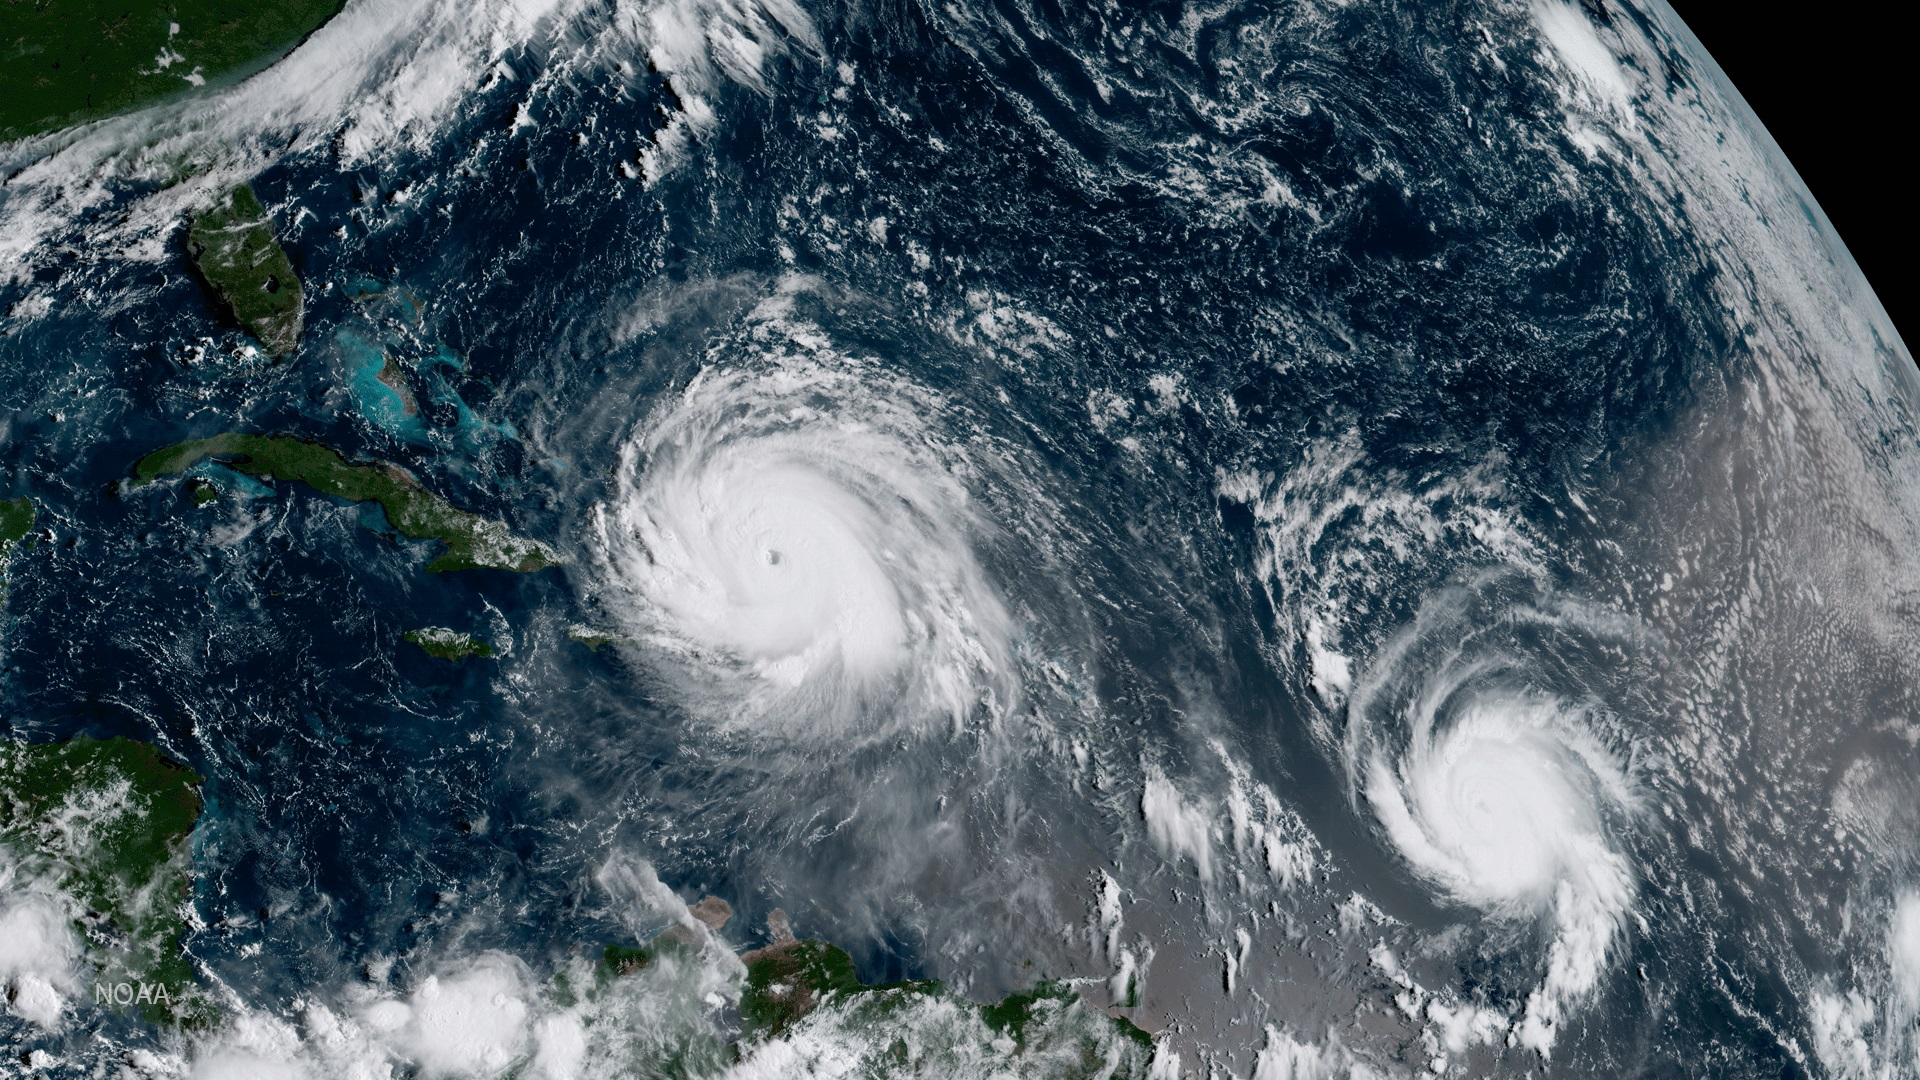 In this NOAA handout image, NOAA's GOES satellite shows Hurricane Irma, left, and Hurricane Jose on Sept. 7, 2017, in the Atlantic Ocean. (Credit: NOAA GOES Project via Getty Images)